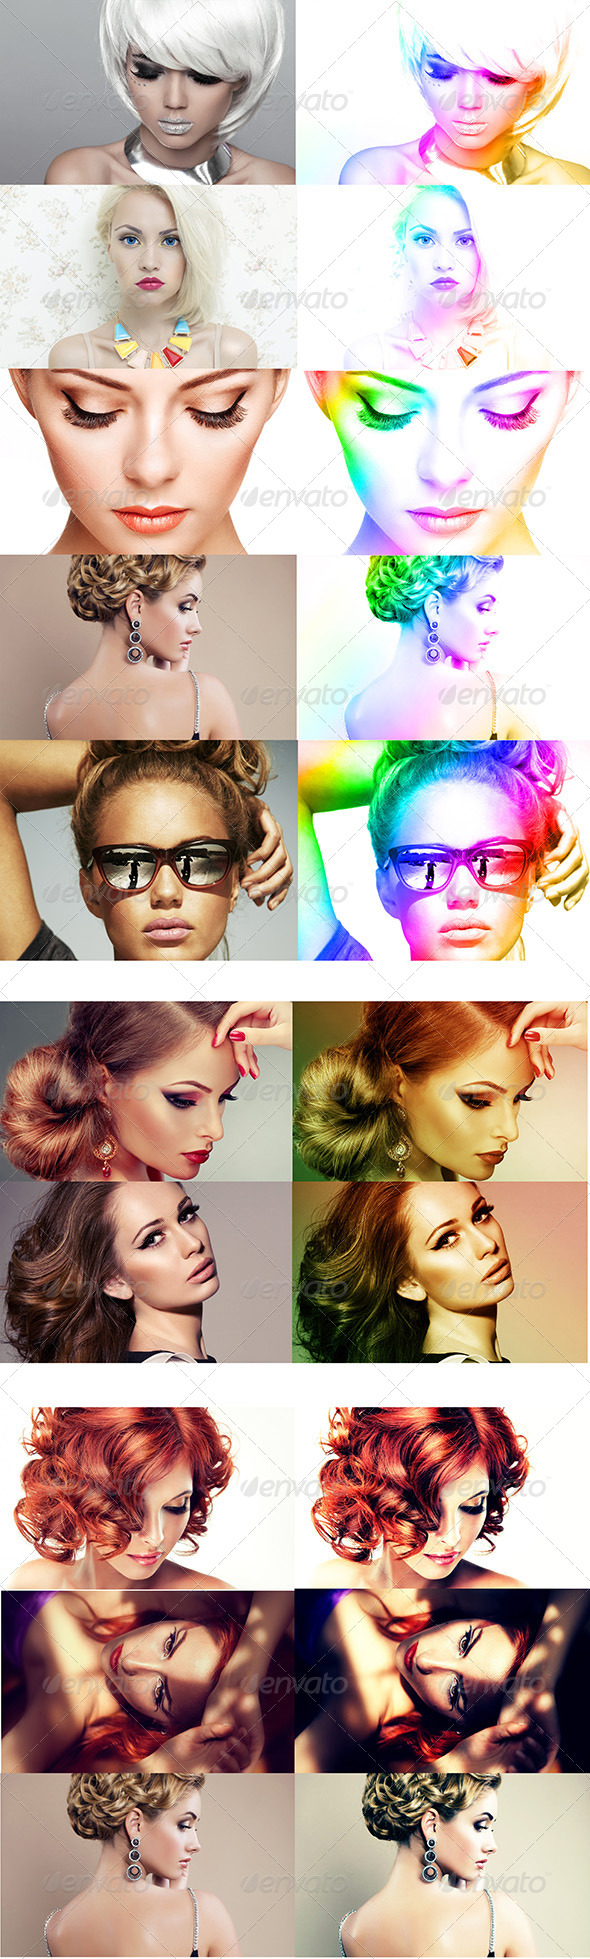 GraphicRiver 3 Colorizing Actions 8180039